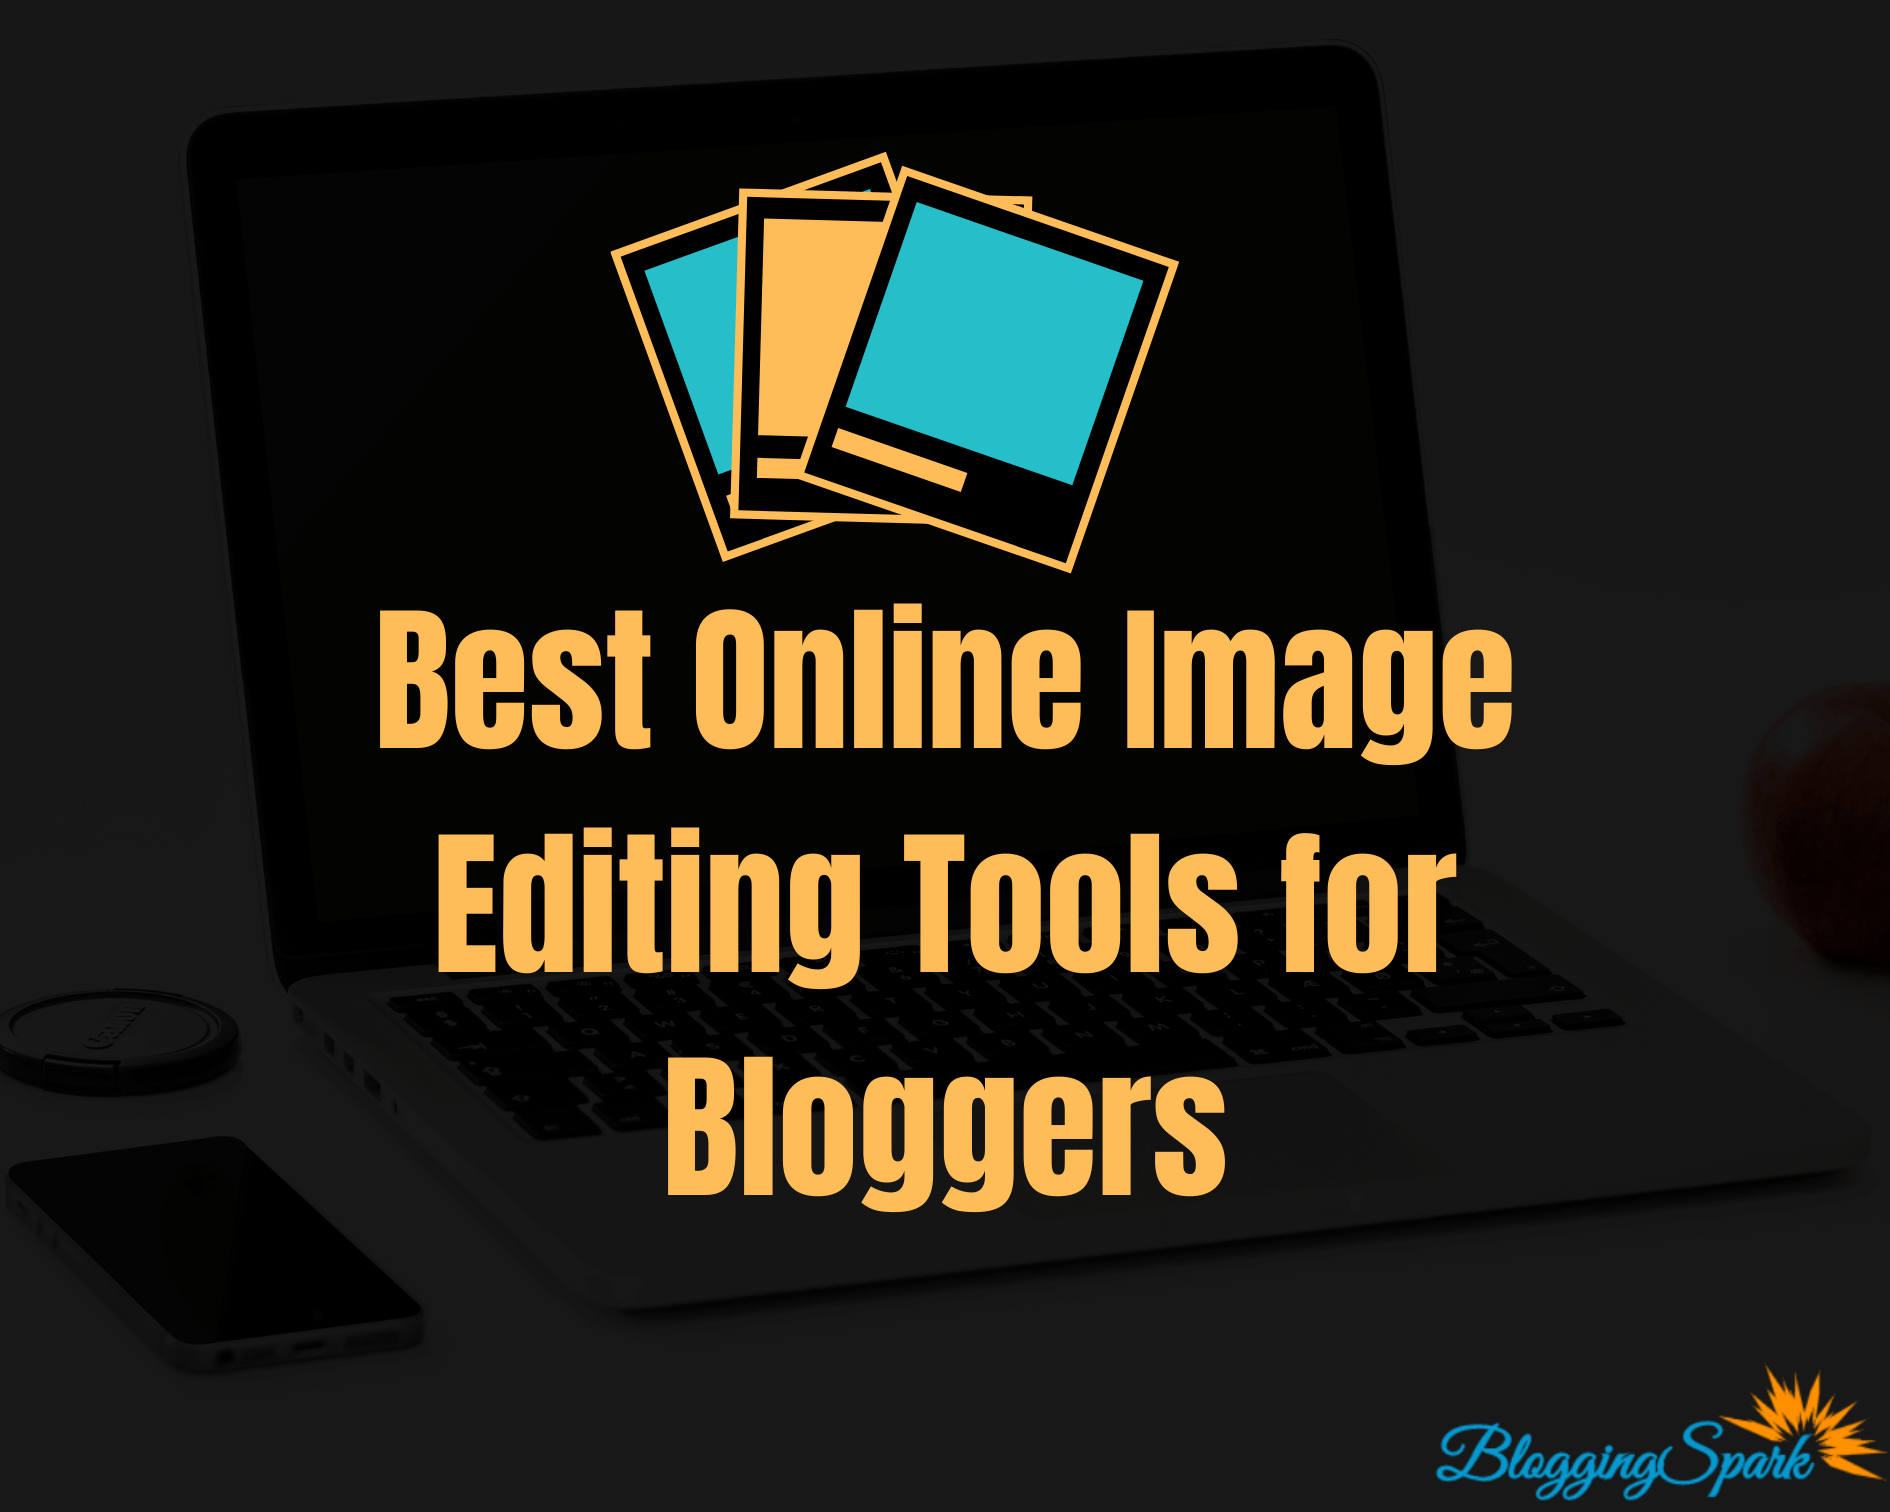 7 Best Online Image Editing Tools for Bloggers in 2021